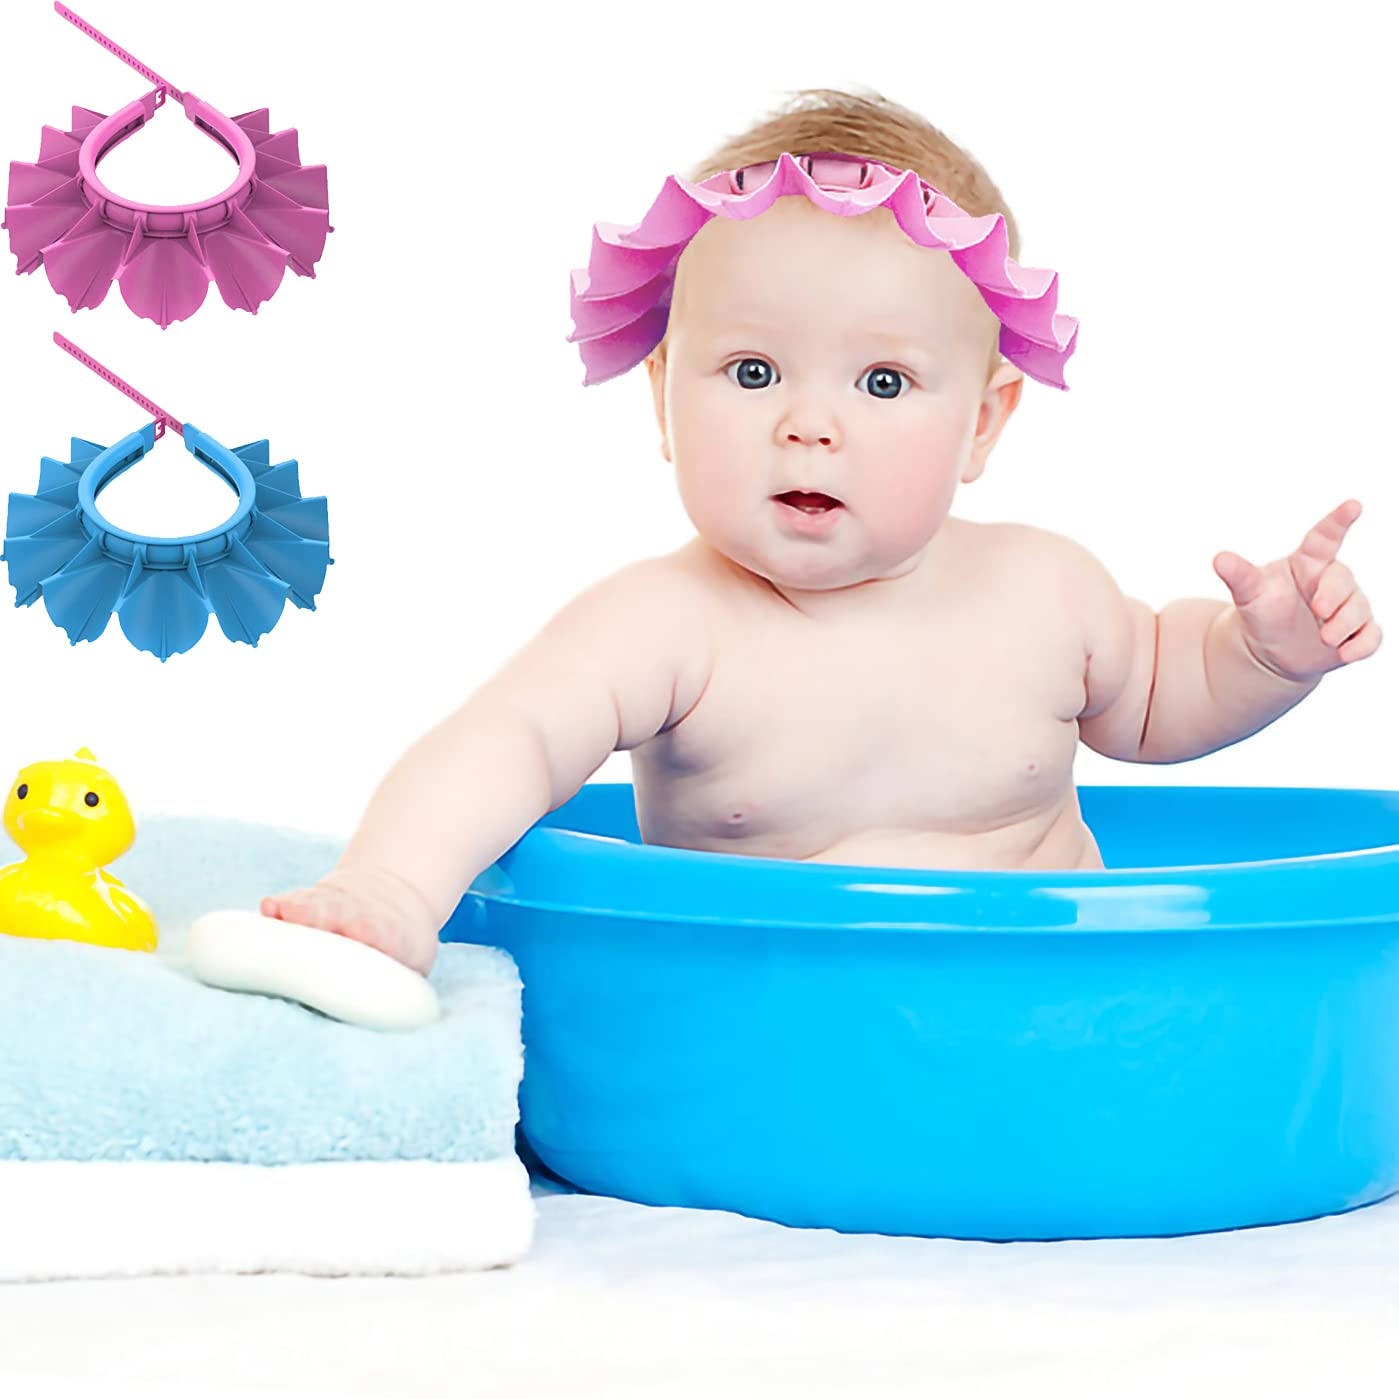 Baby Shower Cap Silicone Bathing Hat, Adjustable Shower Cap Kids, Infants Soft Protection Hat Funny Safety Visor Cap Hat for Toddler Children Small Size (Head Circumference 14.5-19.7 Inches) (Pink)